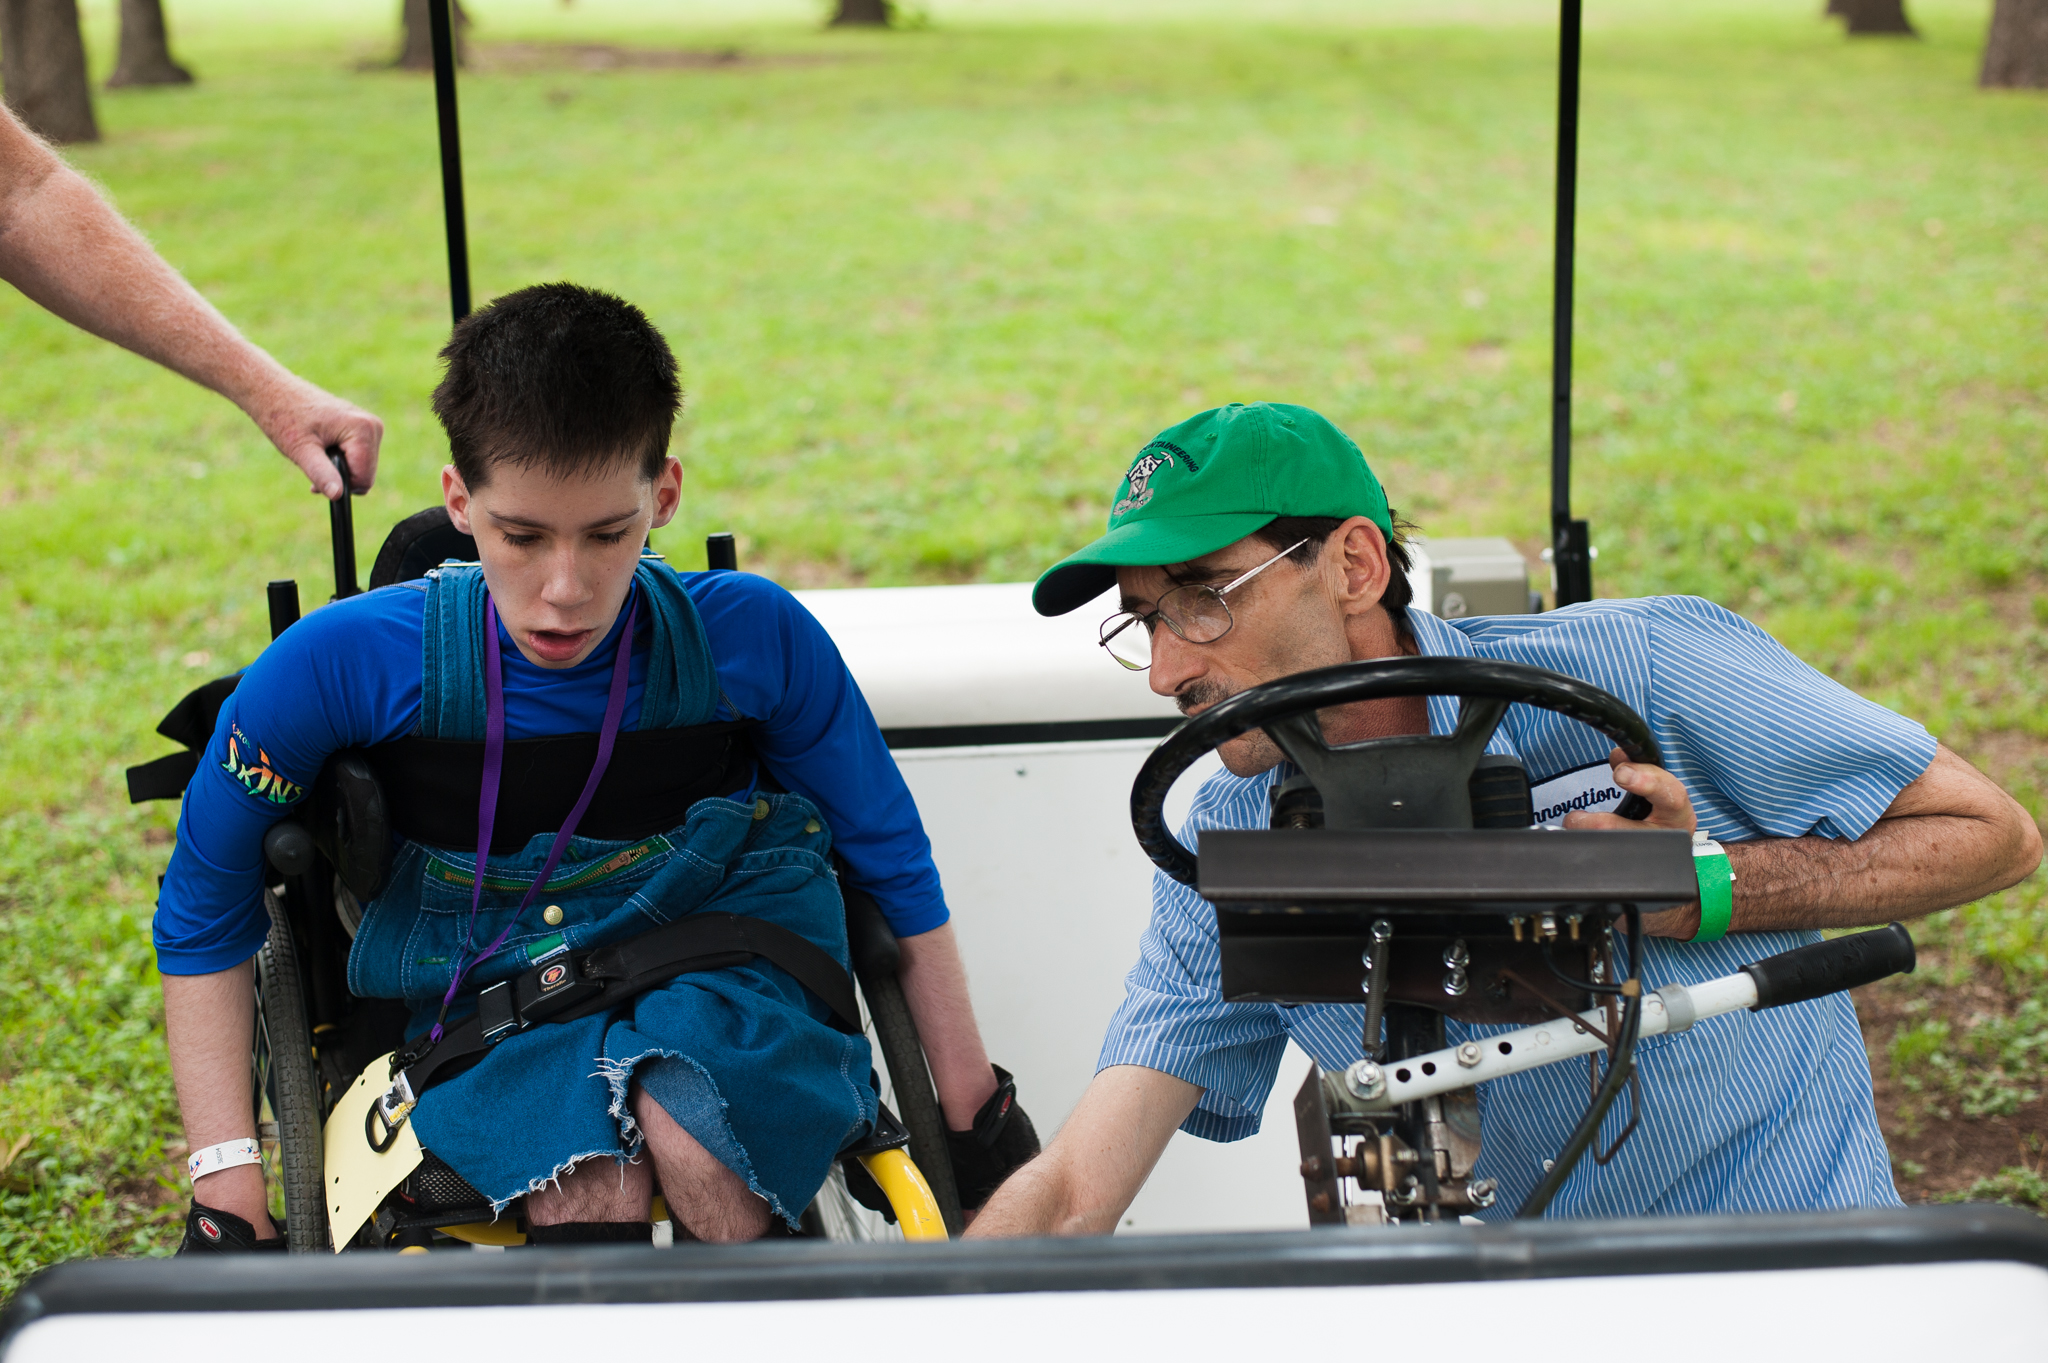 Andrew was curious about the golf cart so Harold explained all the technical parts.